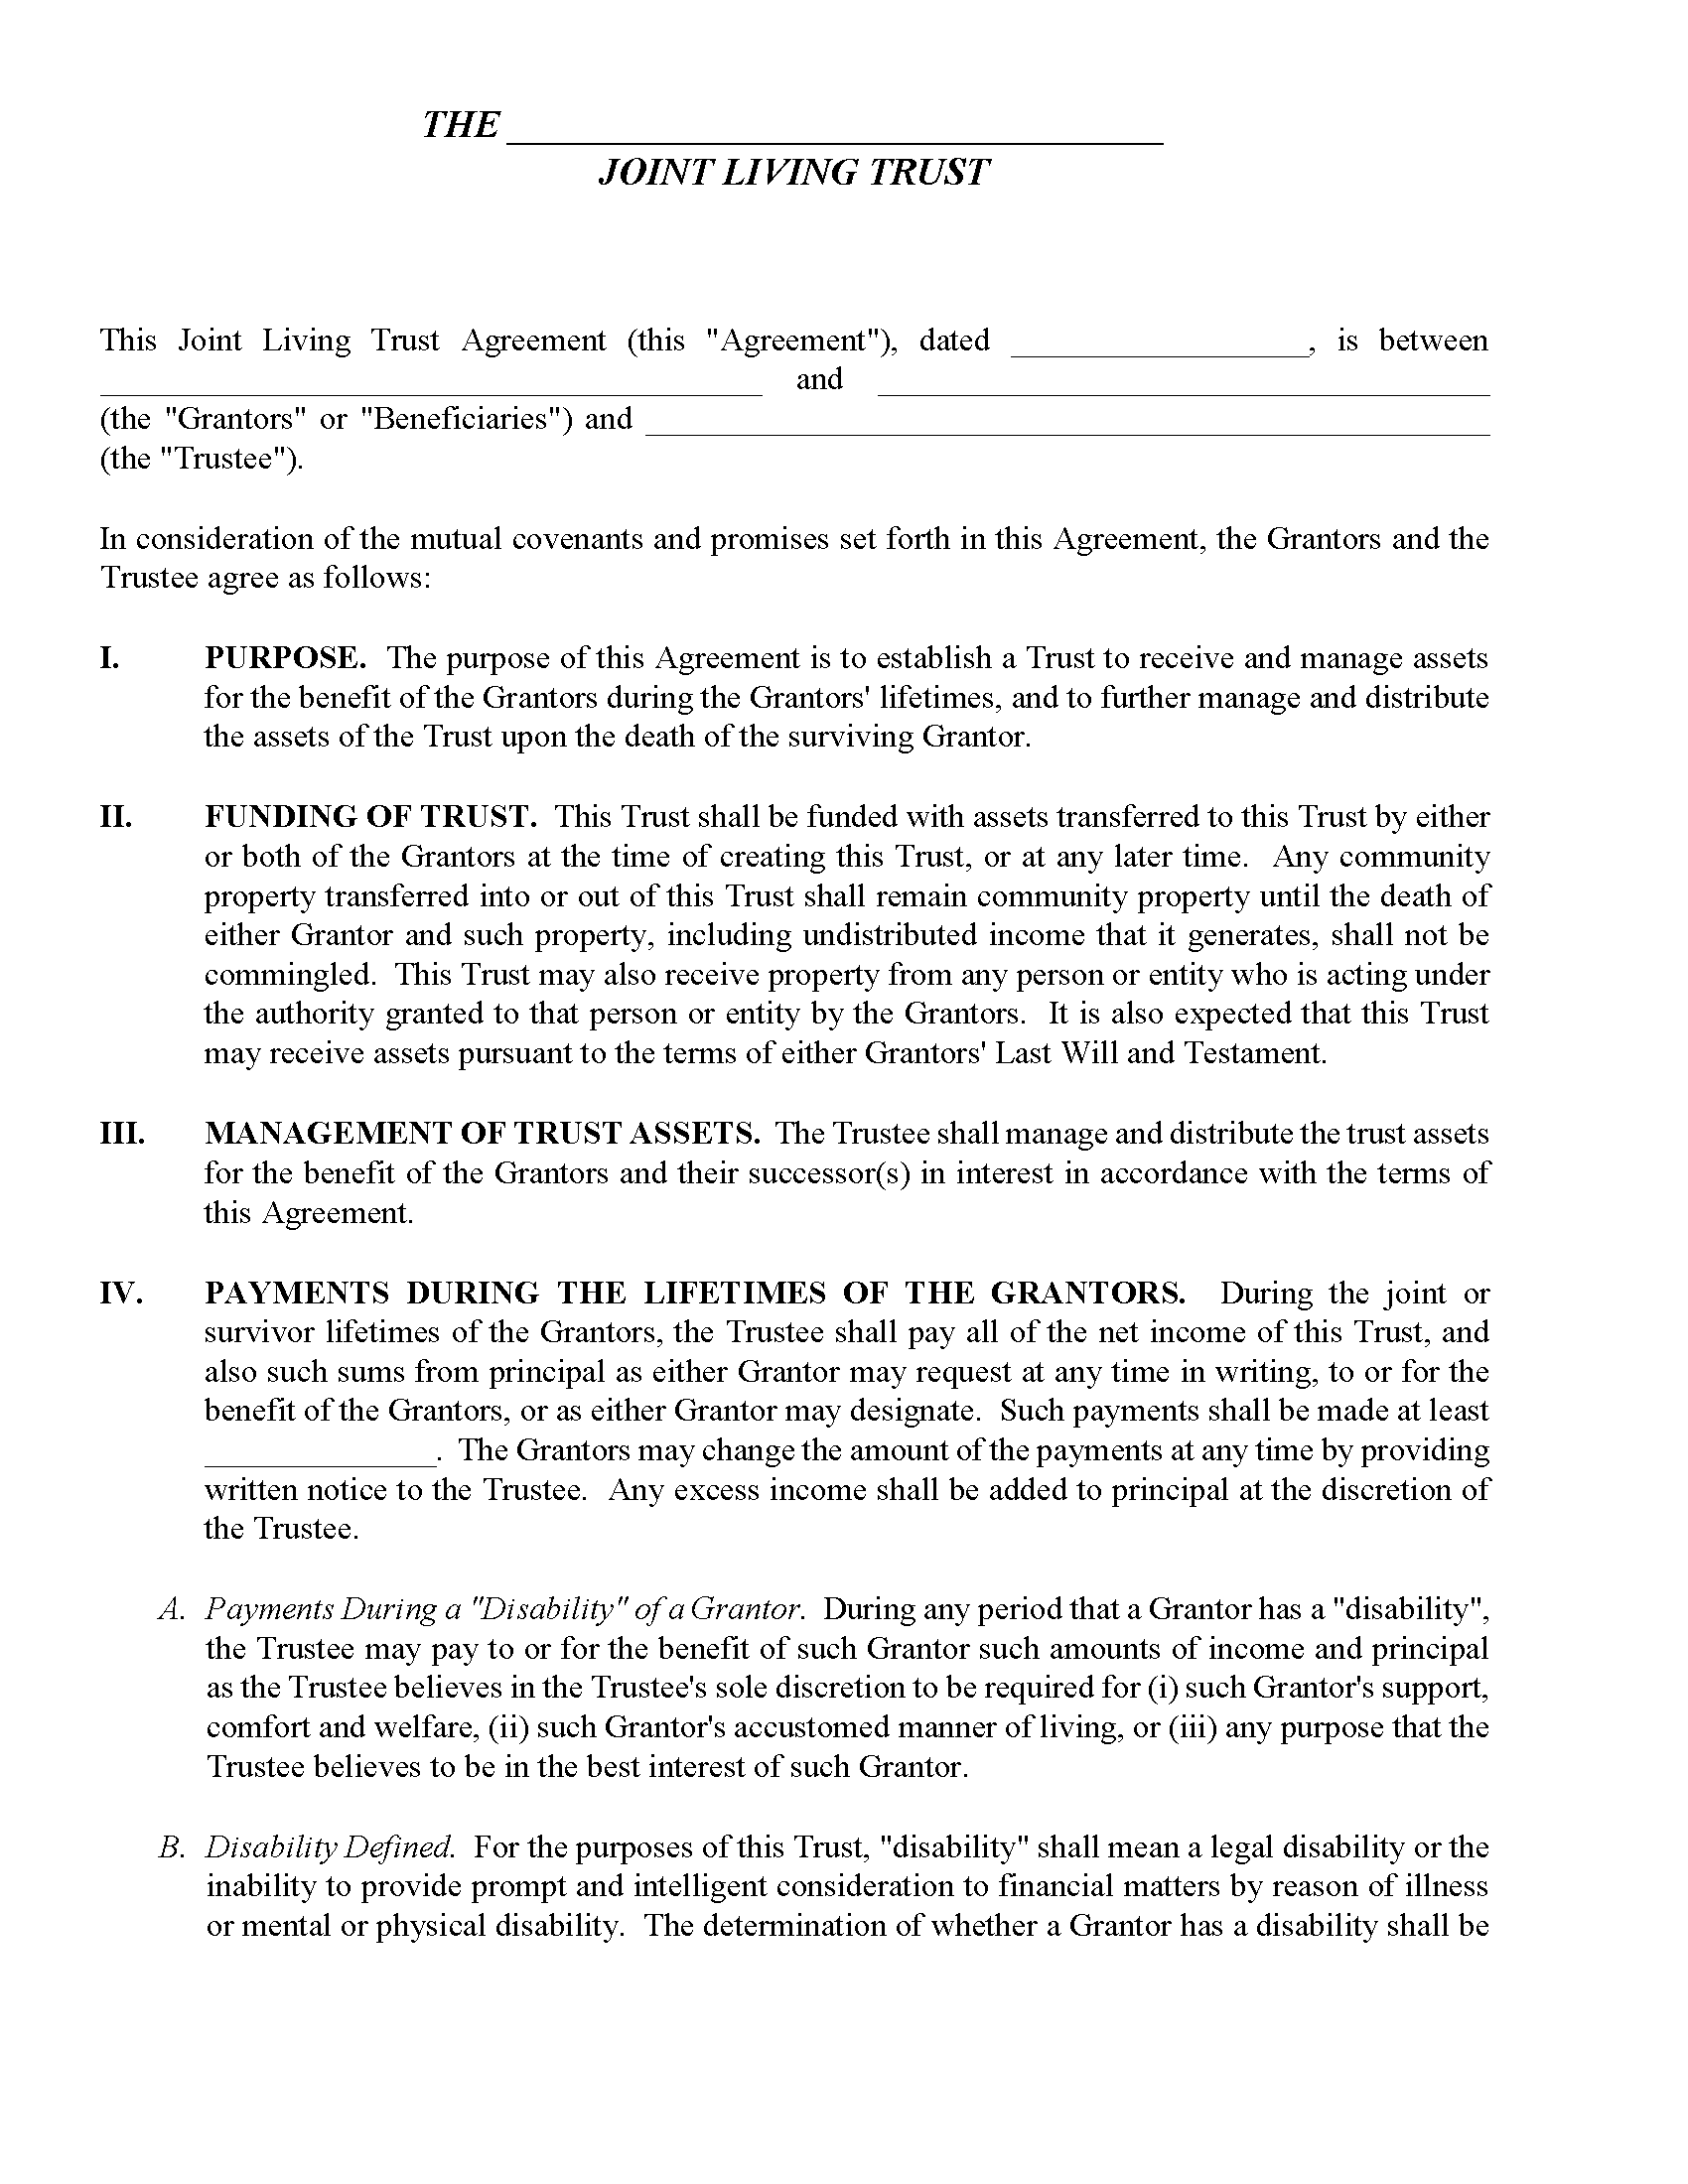 Colorado Joint Living Trust Form